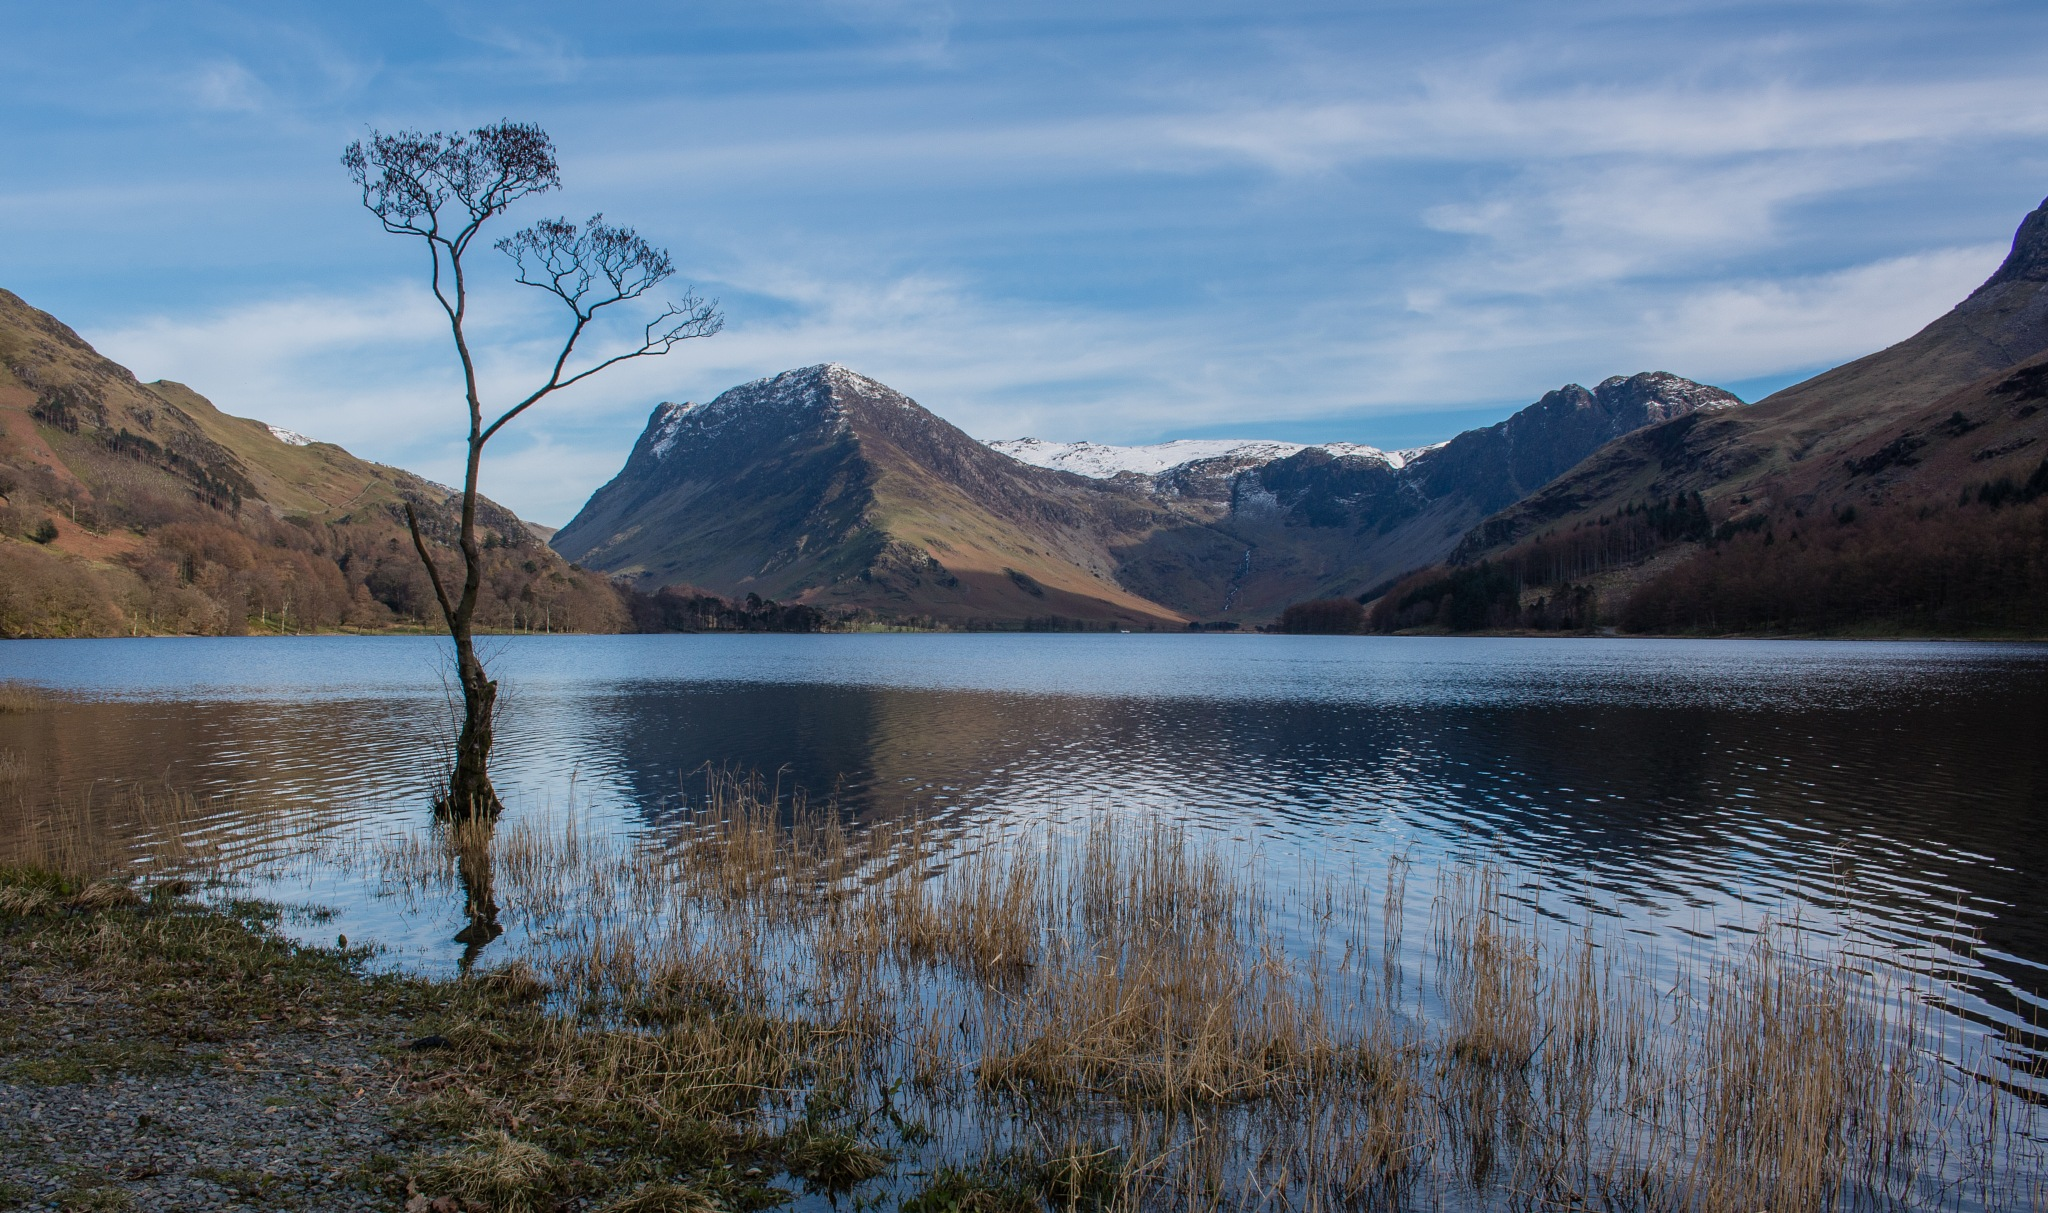 The Buttermere Tree by Chris Wood